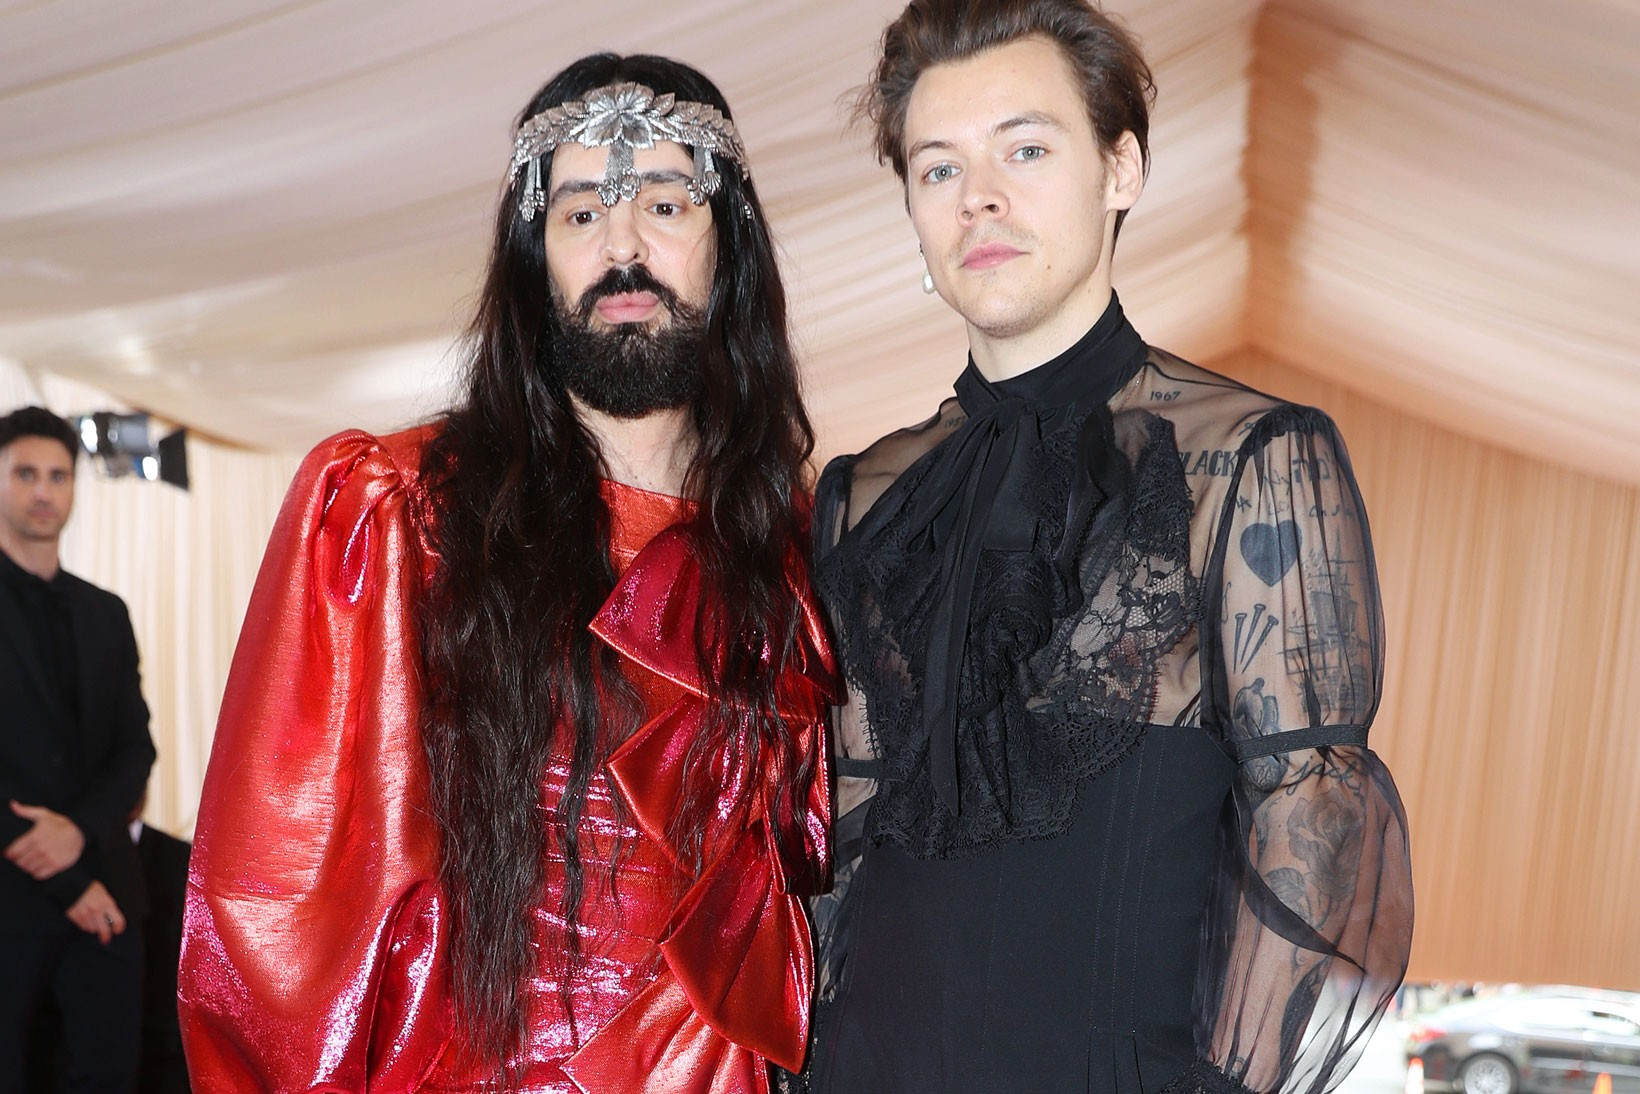 Harry Styles & Alessandro Michele 'Fine Line' Tee exclusive collaboration gucci music albums where to purchase buy